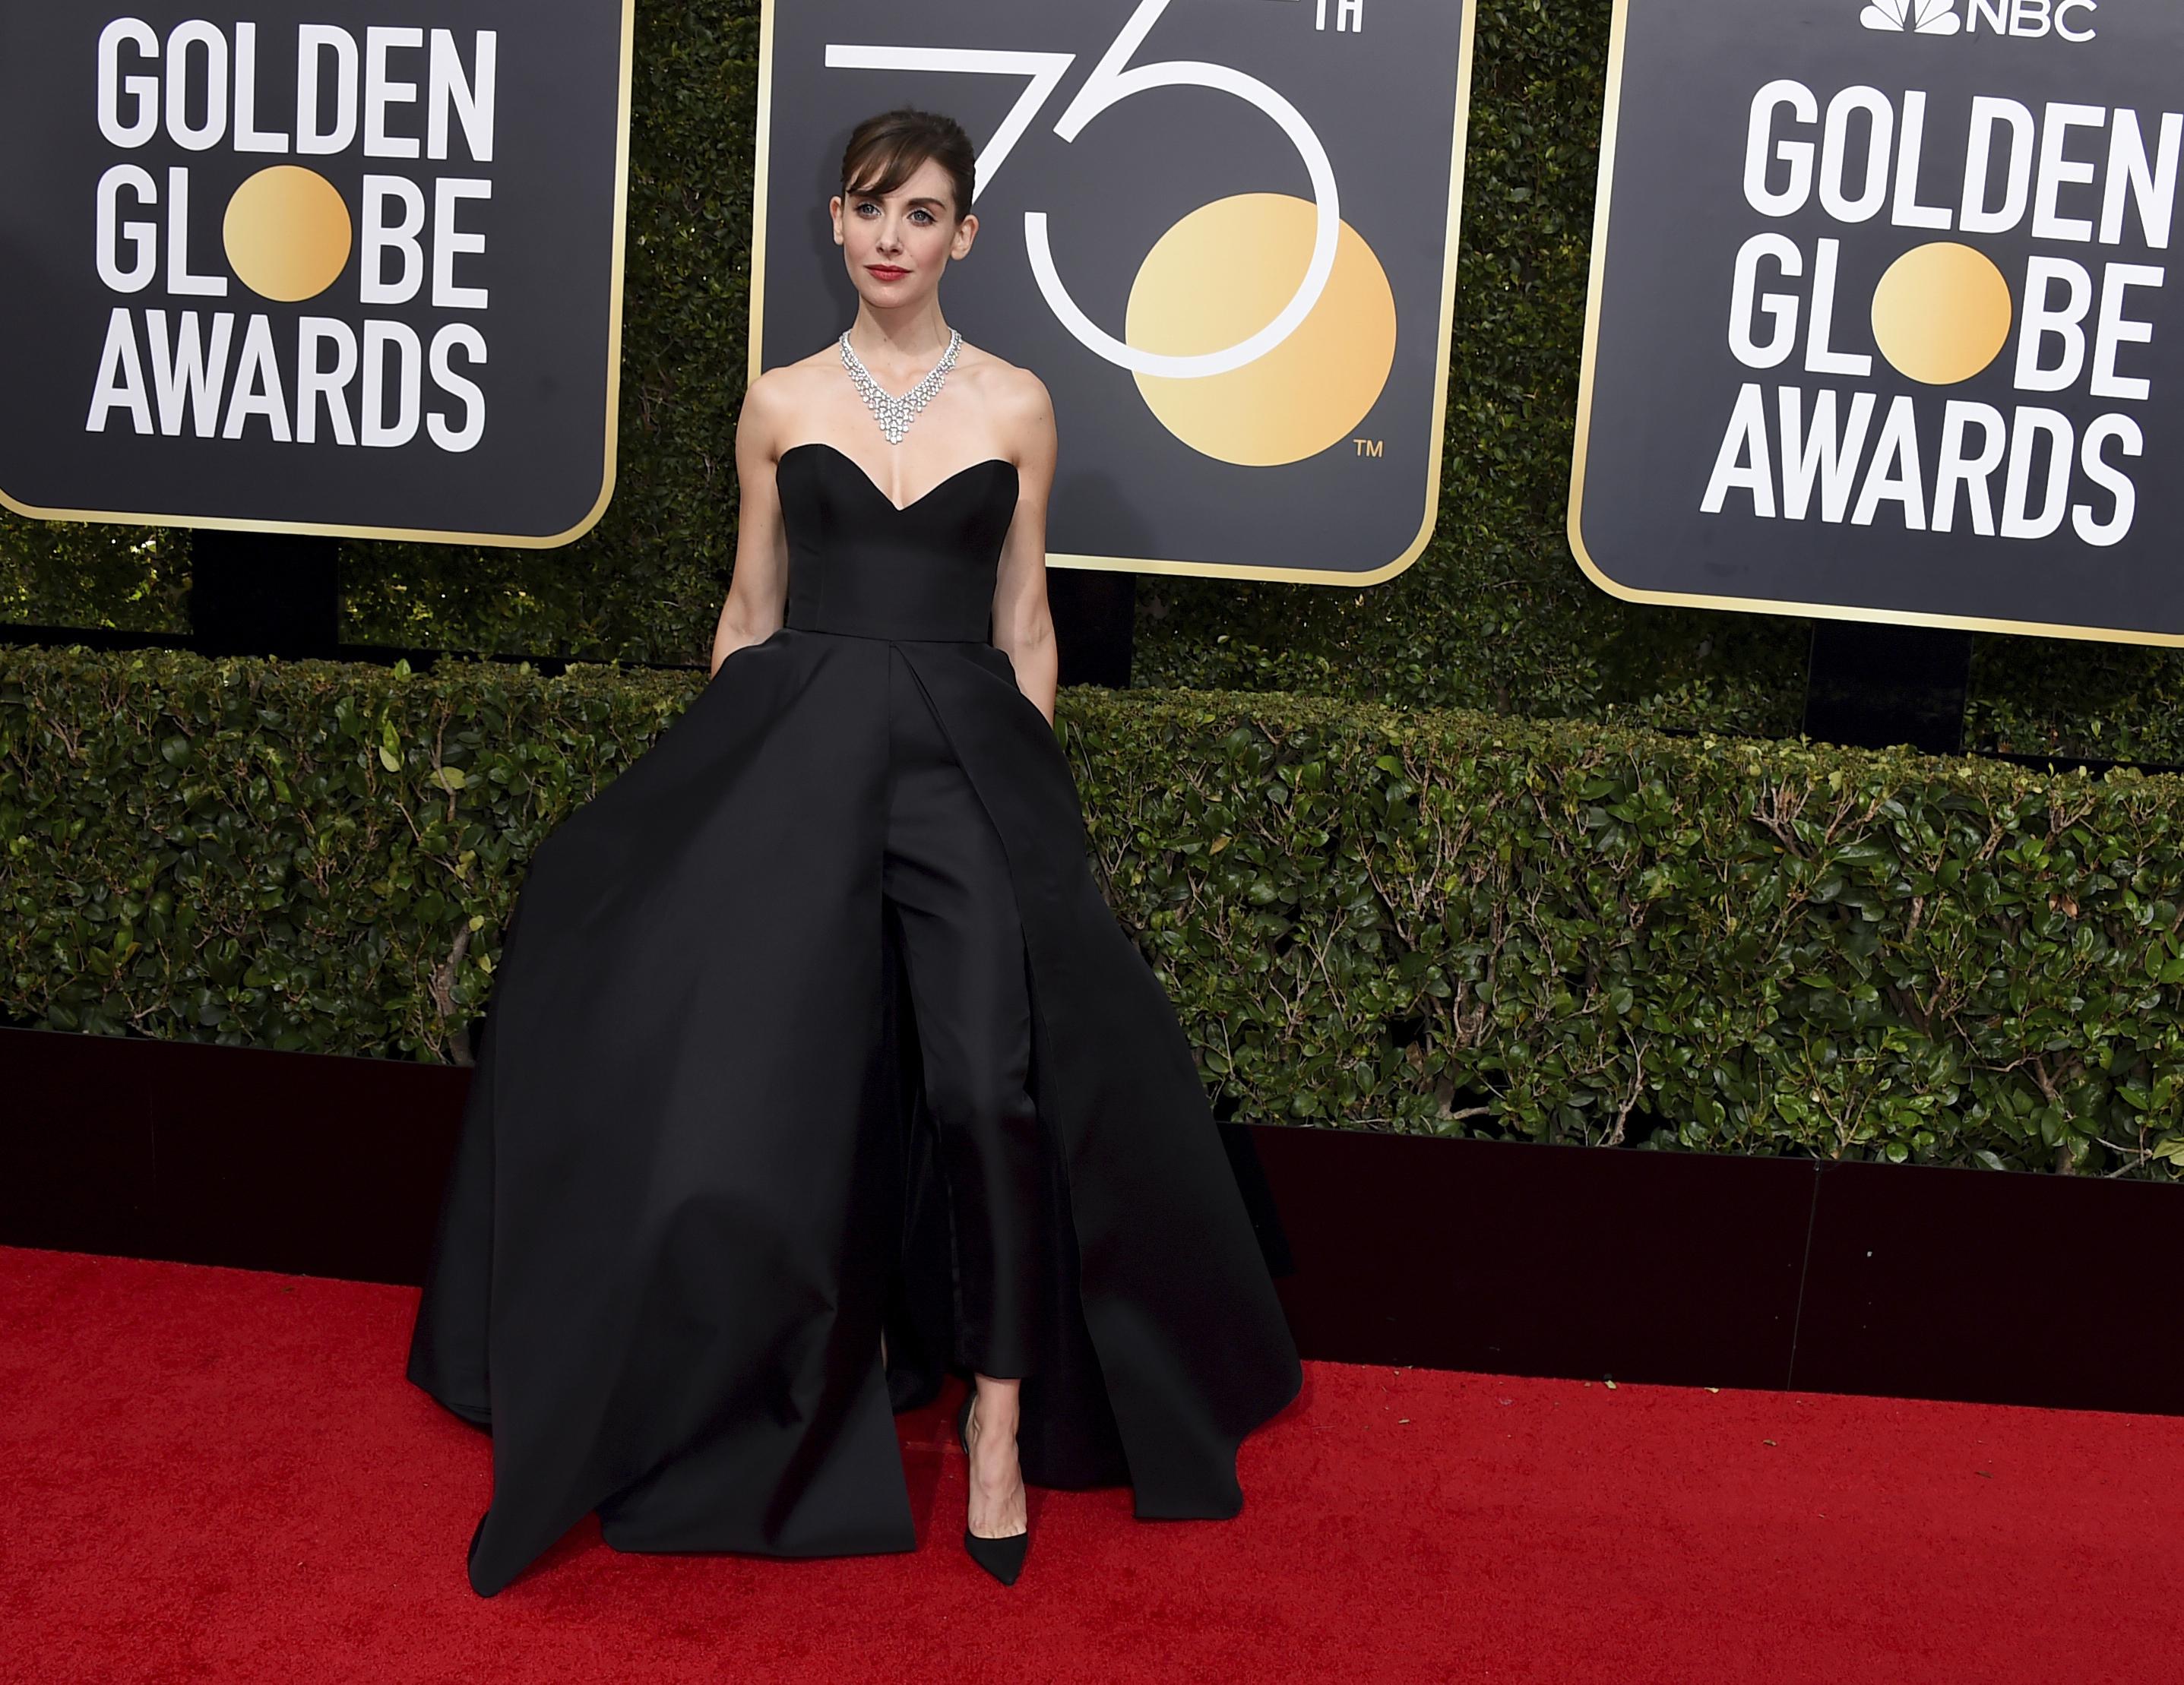 <div class='meta'><div class='origin-logo' data-origin='AP'></div><span class='caption-text' data-credit='Jordan Strauss/Invision/AP'>Alison Brie arrives at the 75th annual Golden Globe Awards at the Beverly Hilton Hotel on Sunday, Jan. 7, 2018, in Beverly Hills, Calif.</span></div>